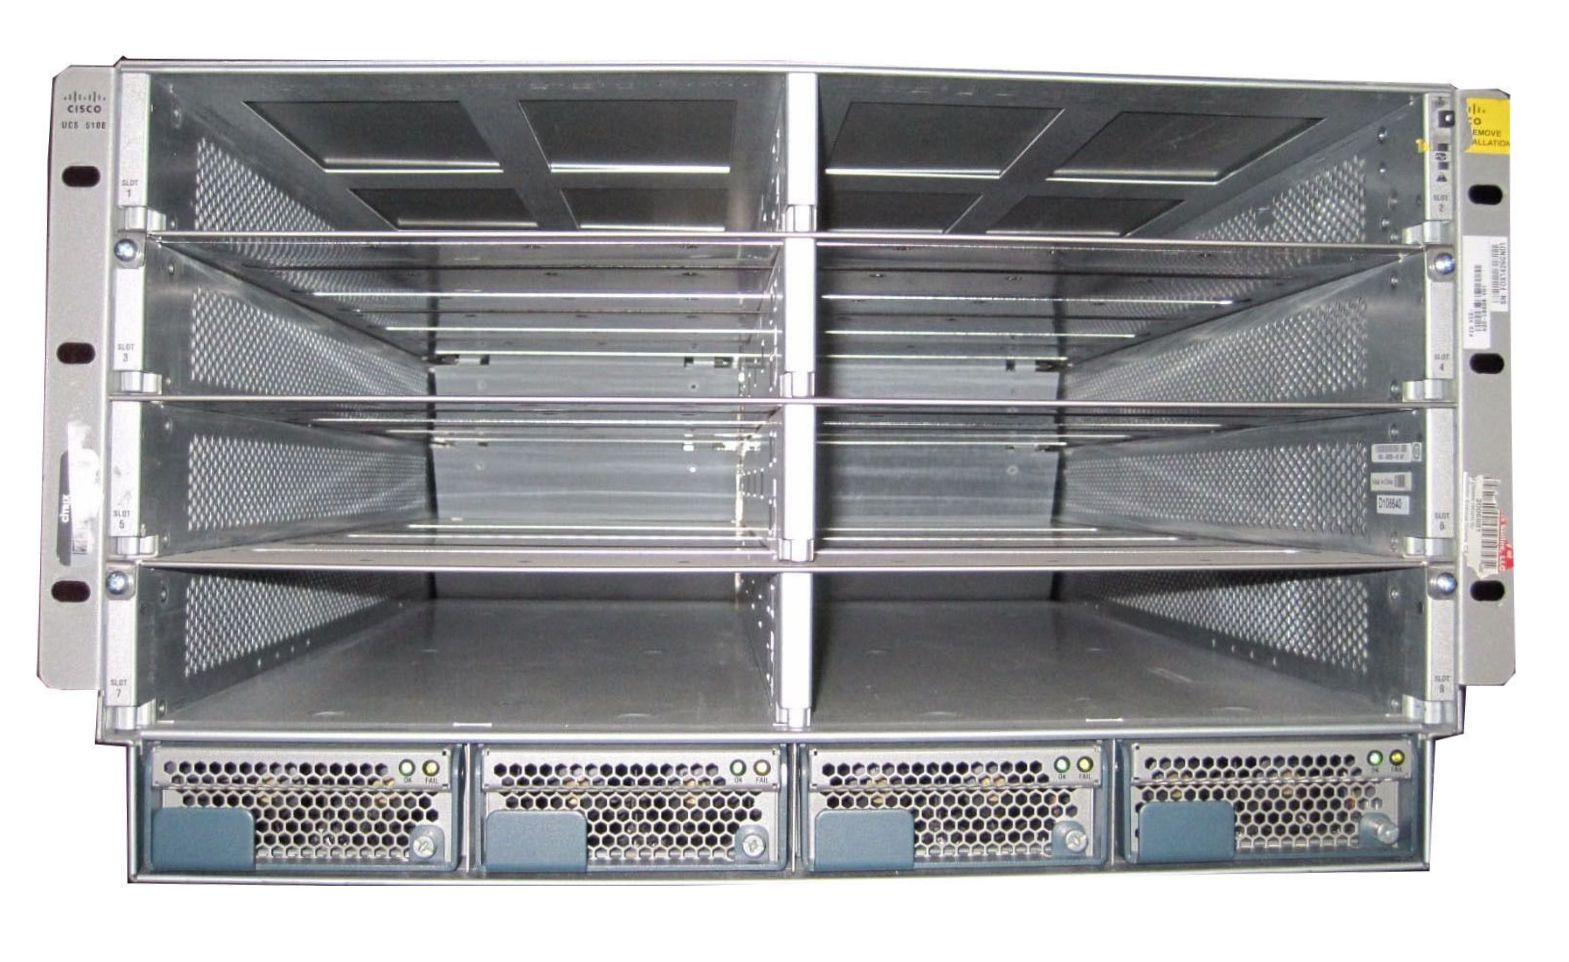 Cisco N20-C6508 UCS 5108 Blade Server Chassis w/4xPSU/8xFAN/2 x 2208XP